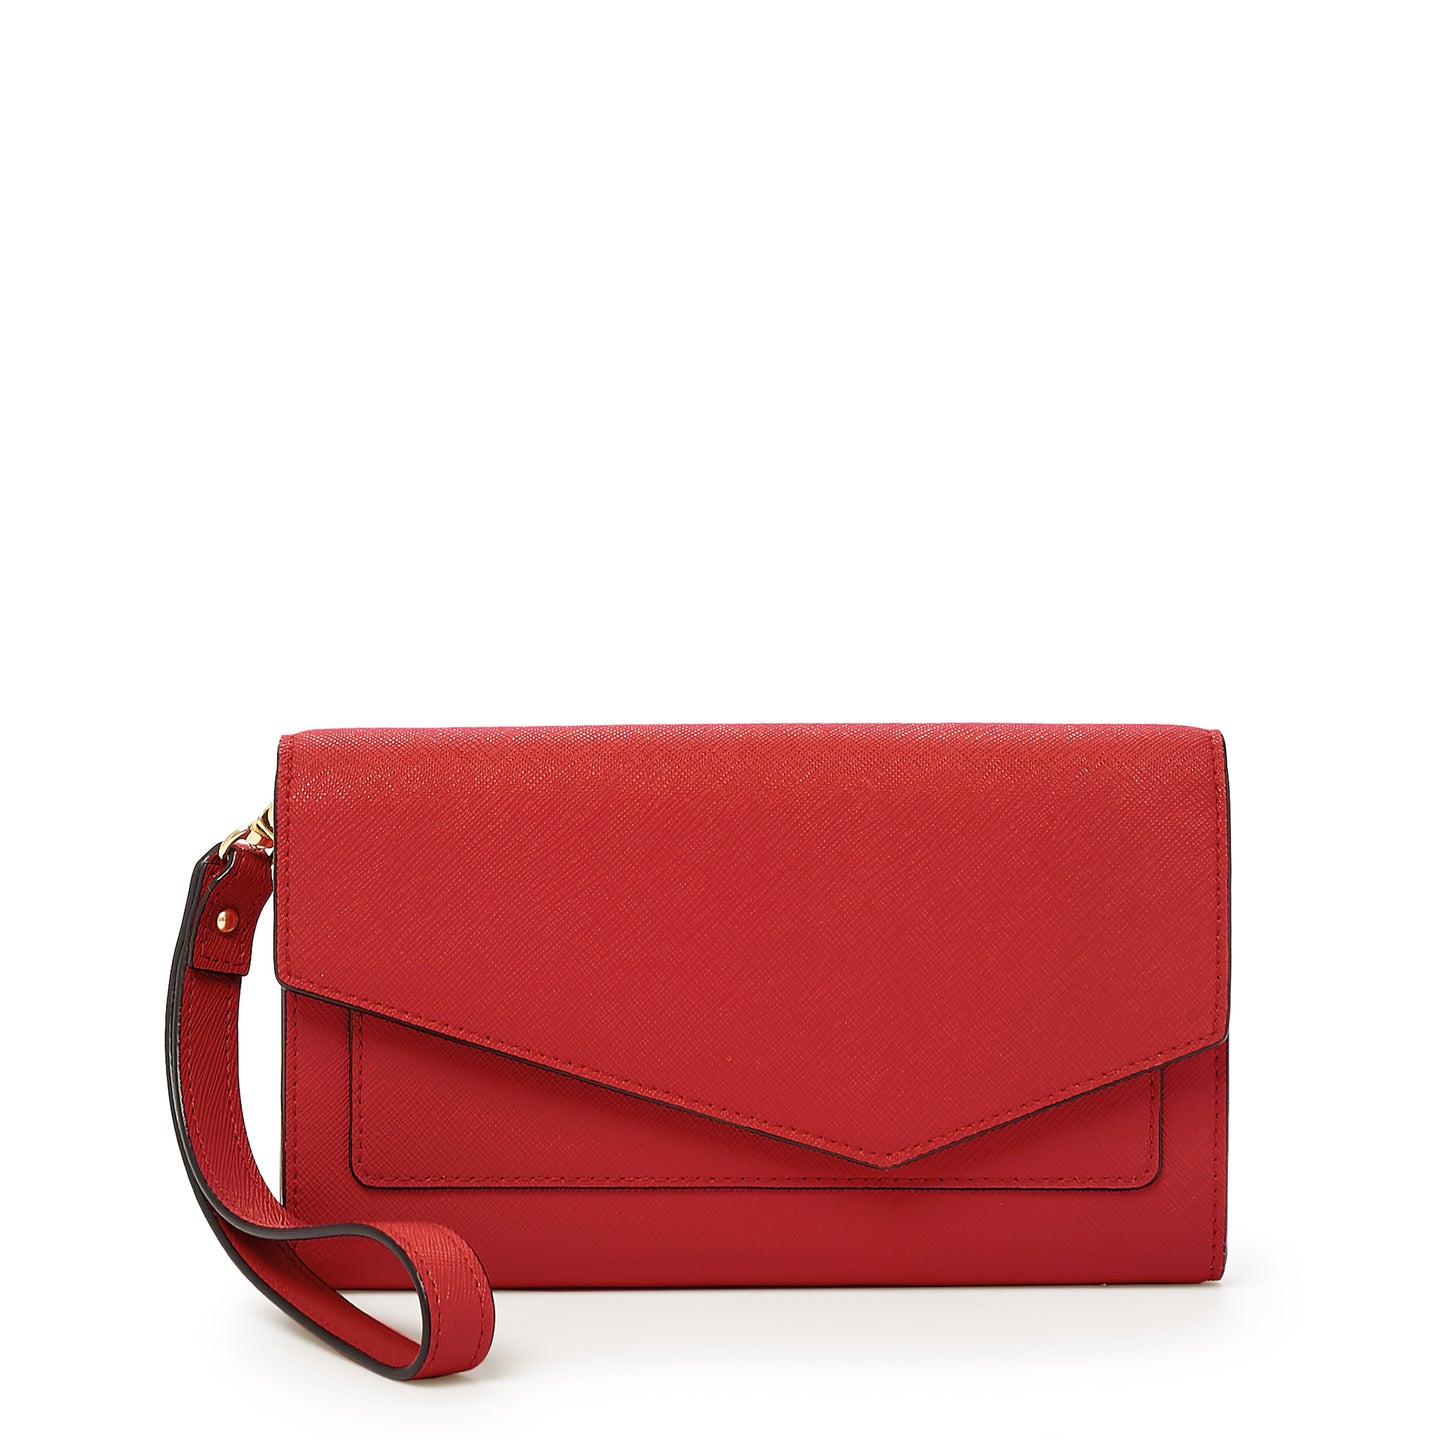 botkier cobble hill wallet in poppy red